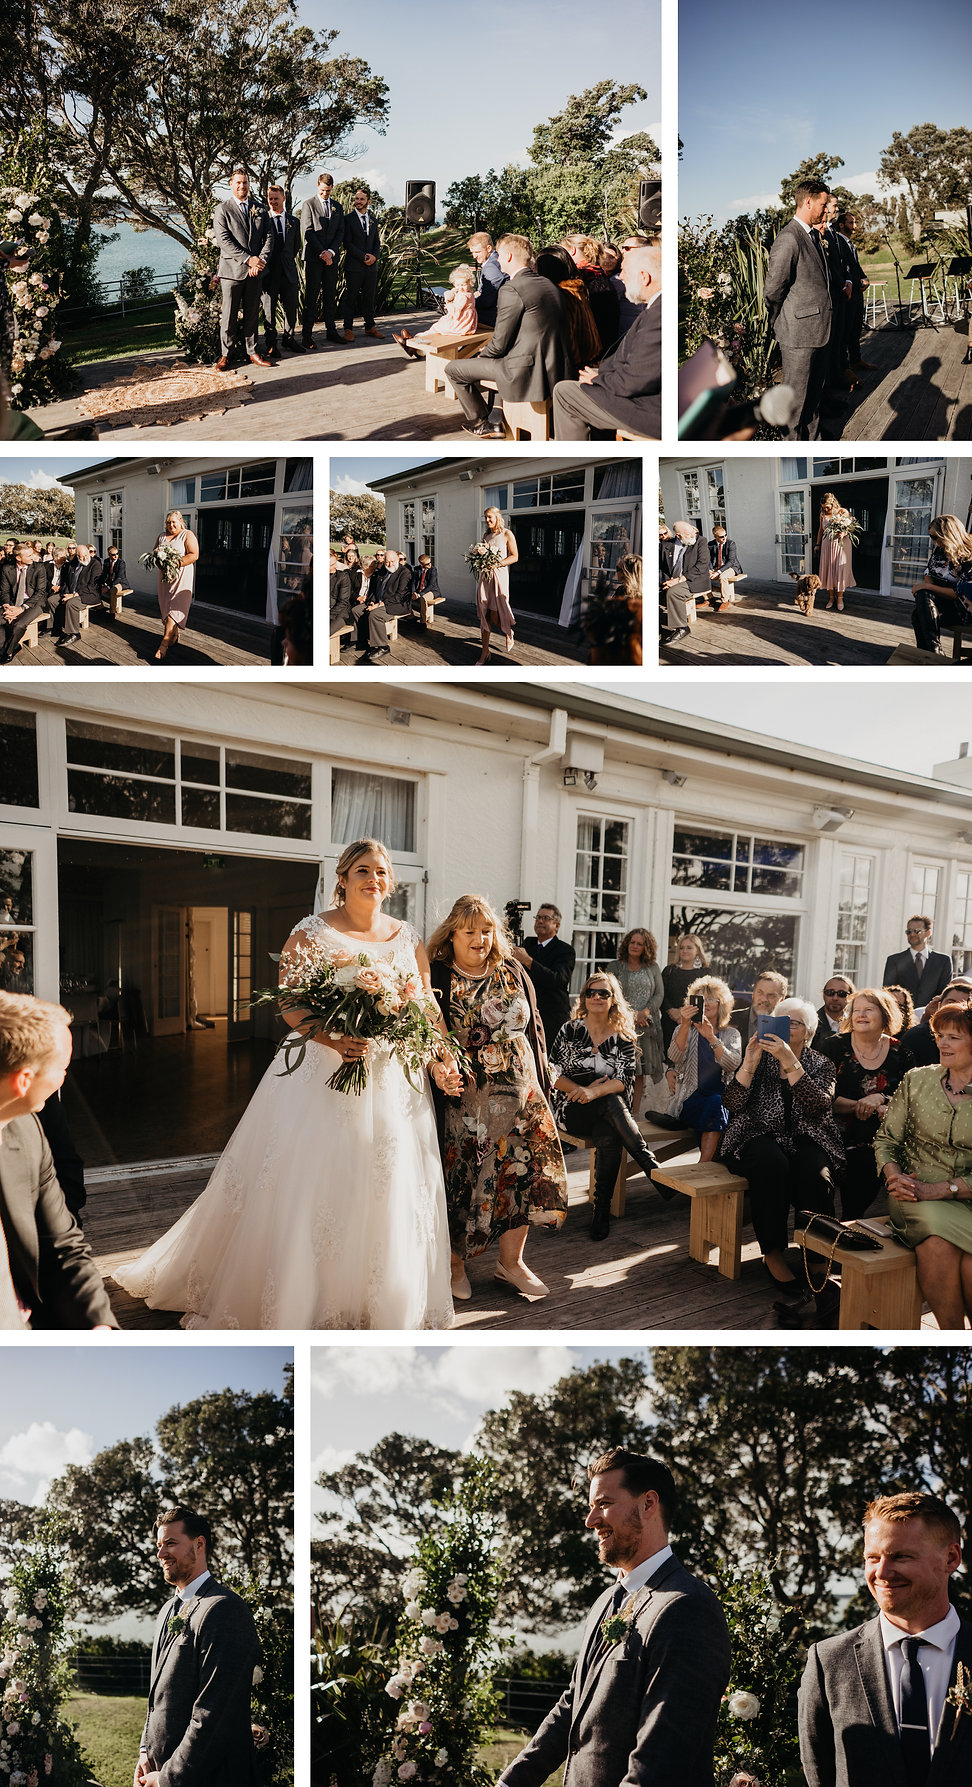 wedding at the officers mess in narrow neck beach, auckland new zealand